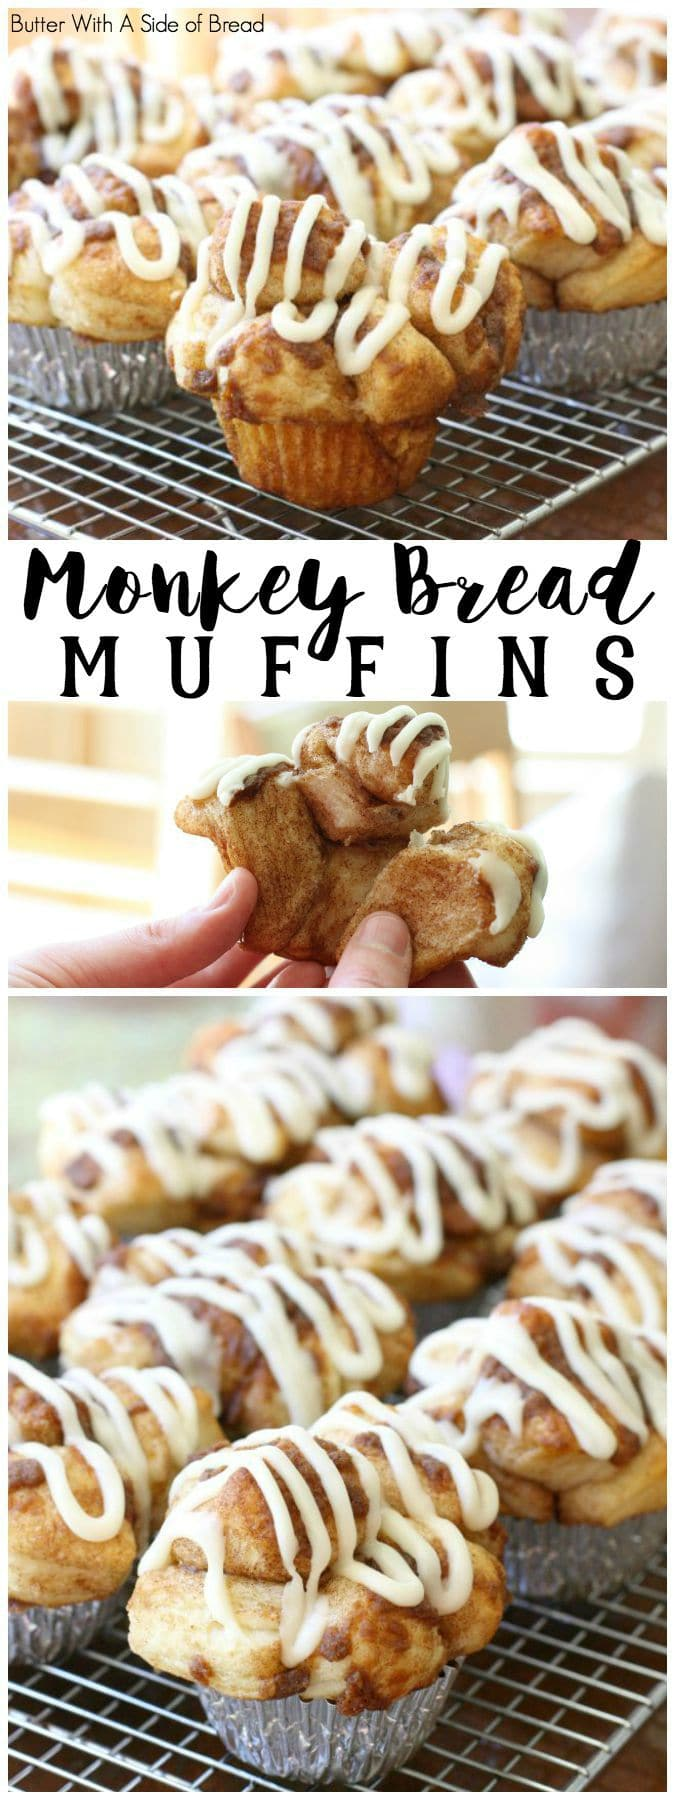 If you like Monkey Bread, then you'll love these Monkey Bread Muffins! They have all the flavors of monkey bread and more (hello- icing!) and they're done in just 30 minutes.  Scroll down to see a video I created showing how I made them. Enjoy!